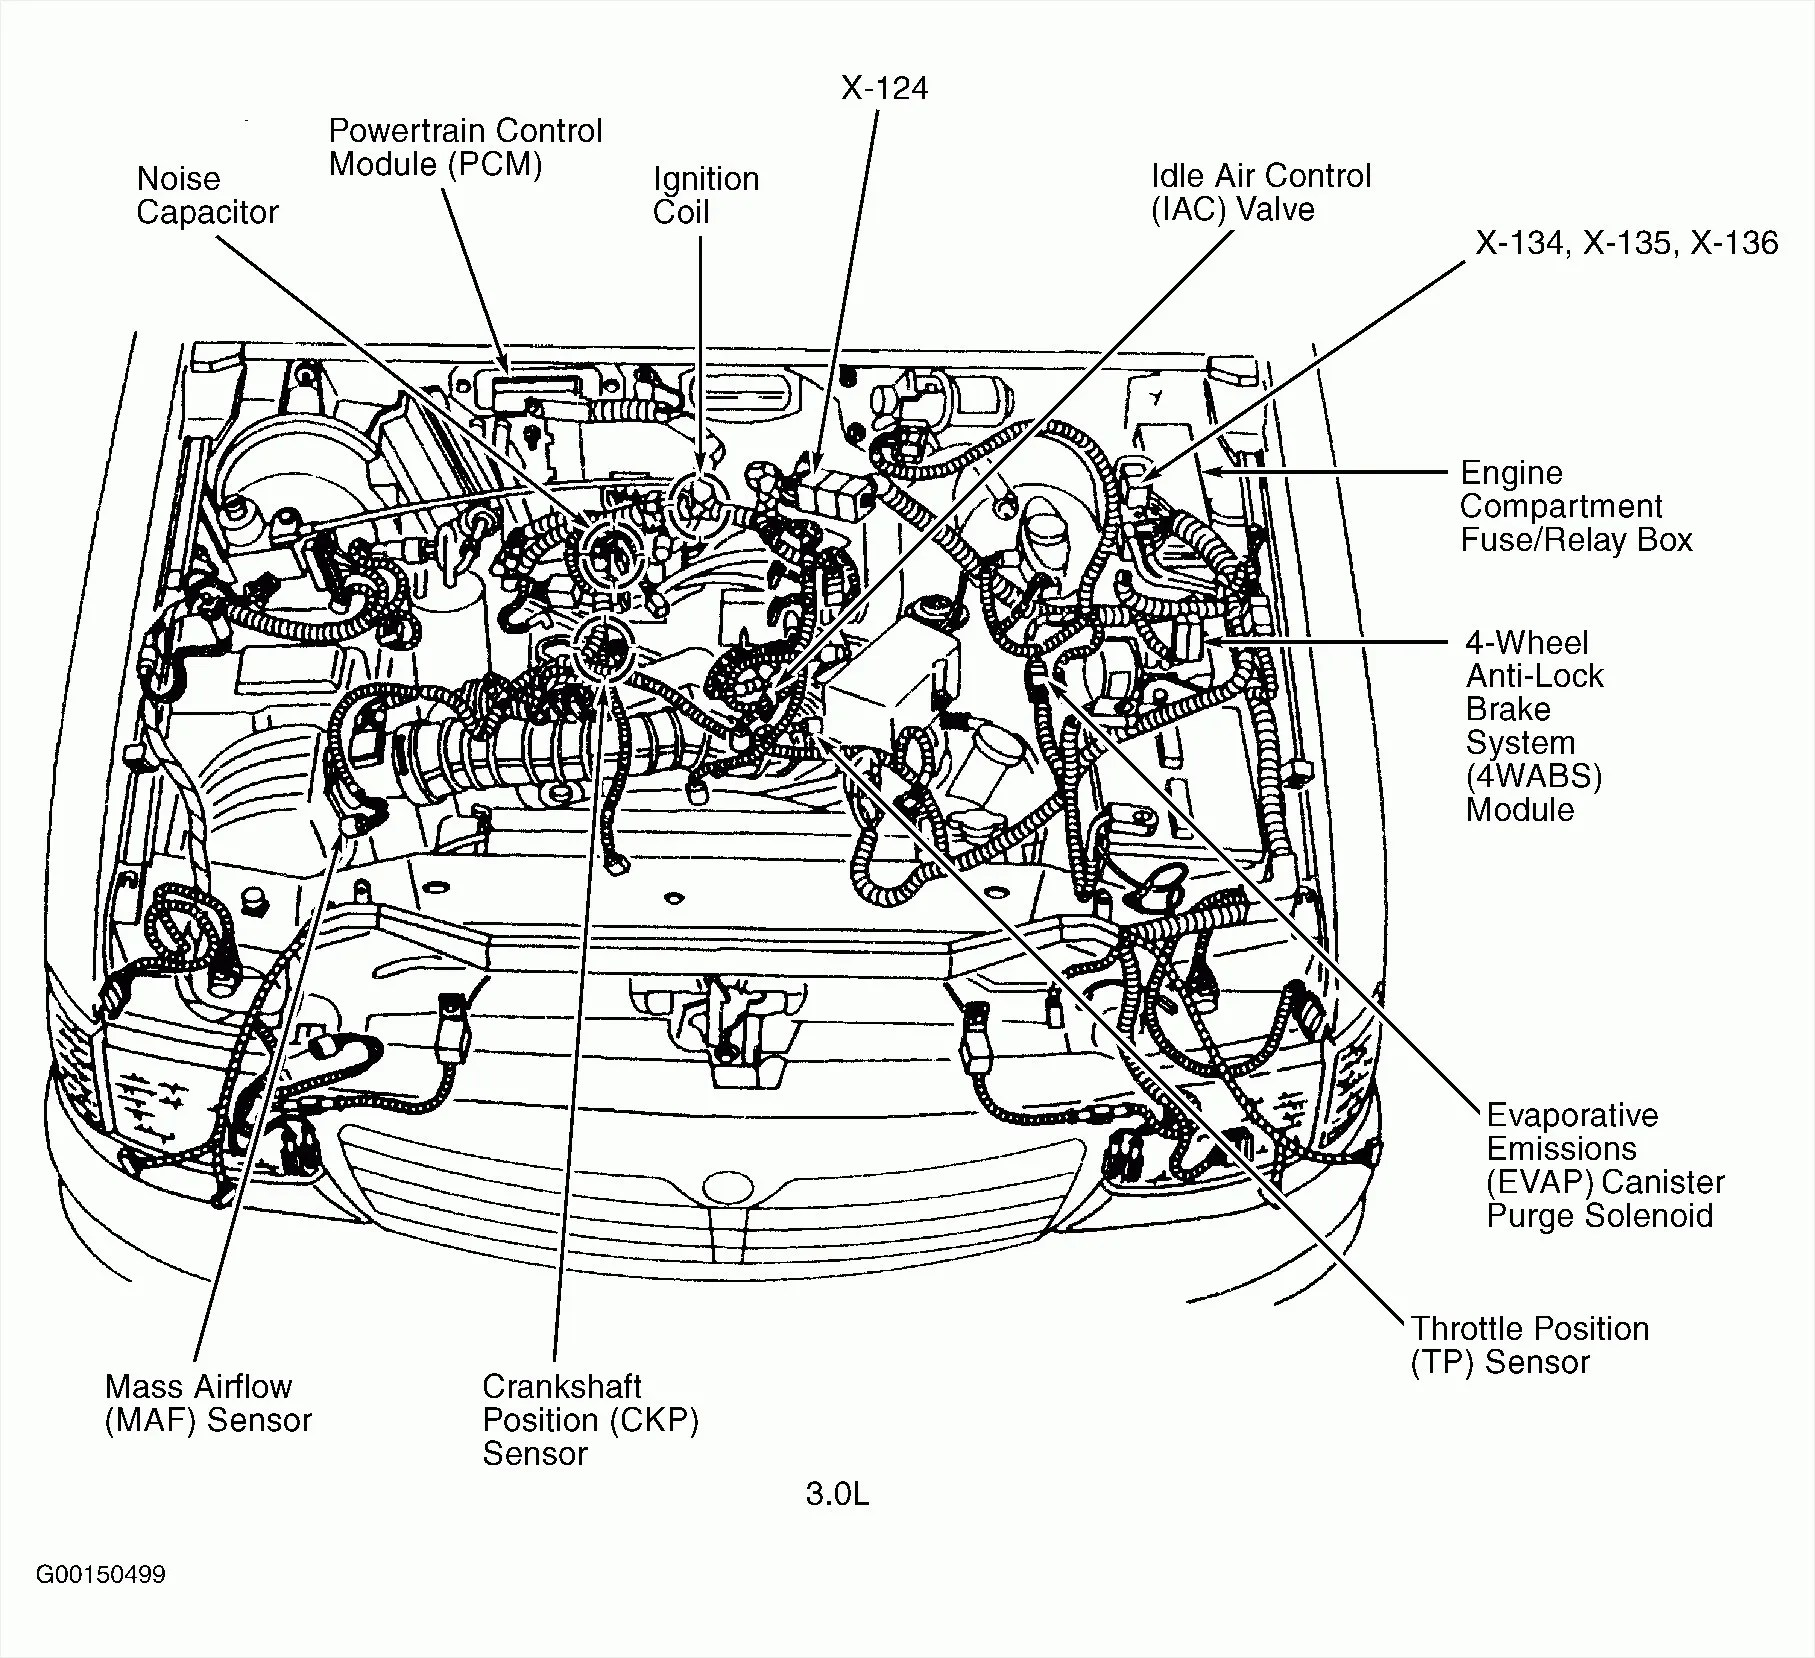 hight resolution of dodge grand caravan engine diagram wiring diagram megadodge grand caravan engine diagram wiring diagram toolbox 2012